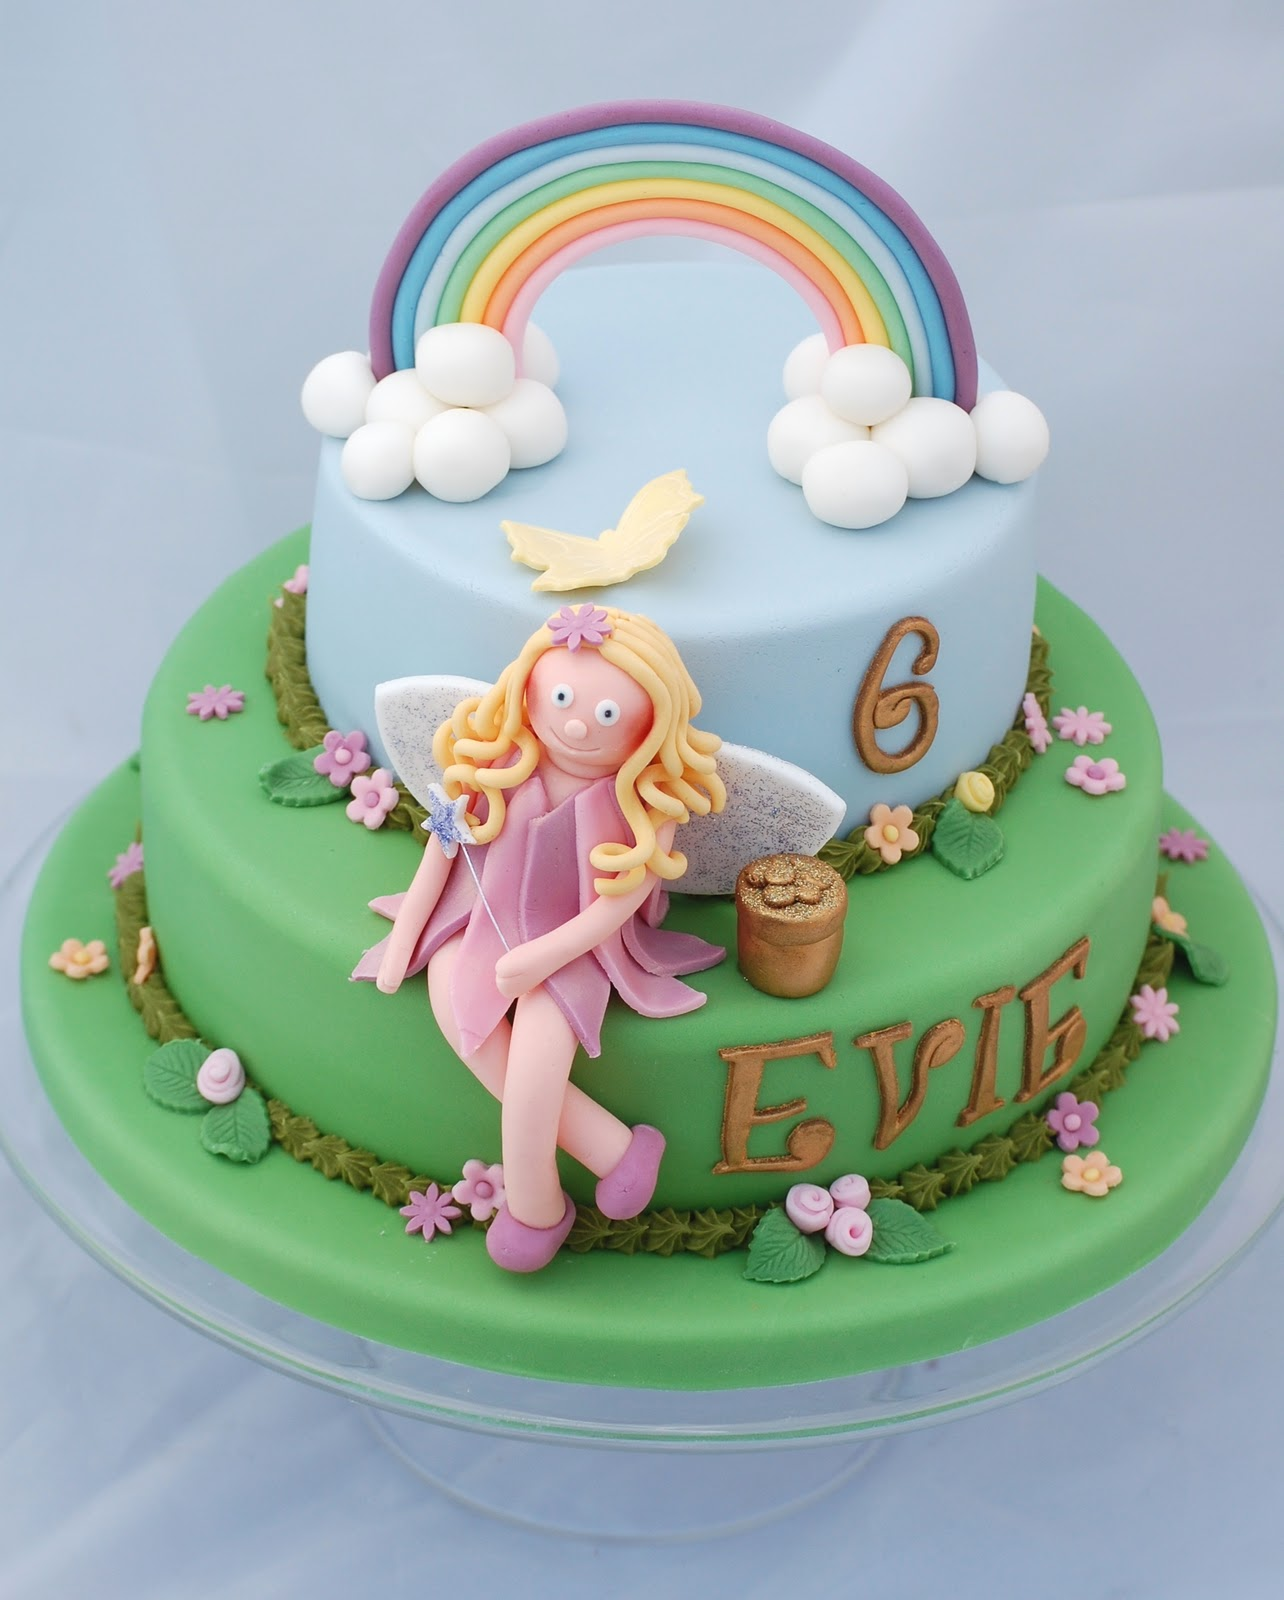 Rainbow Fairy Cake Evies Birthday Part 2